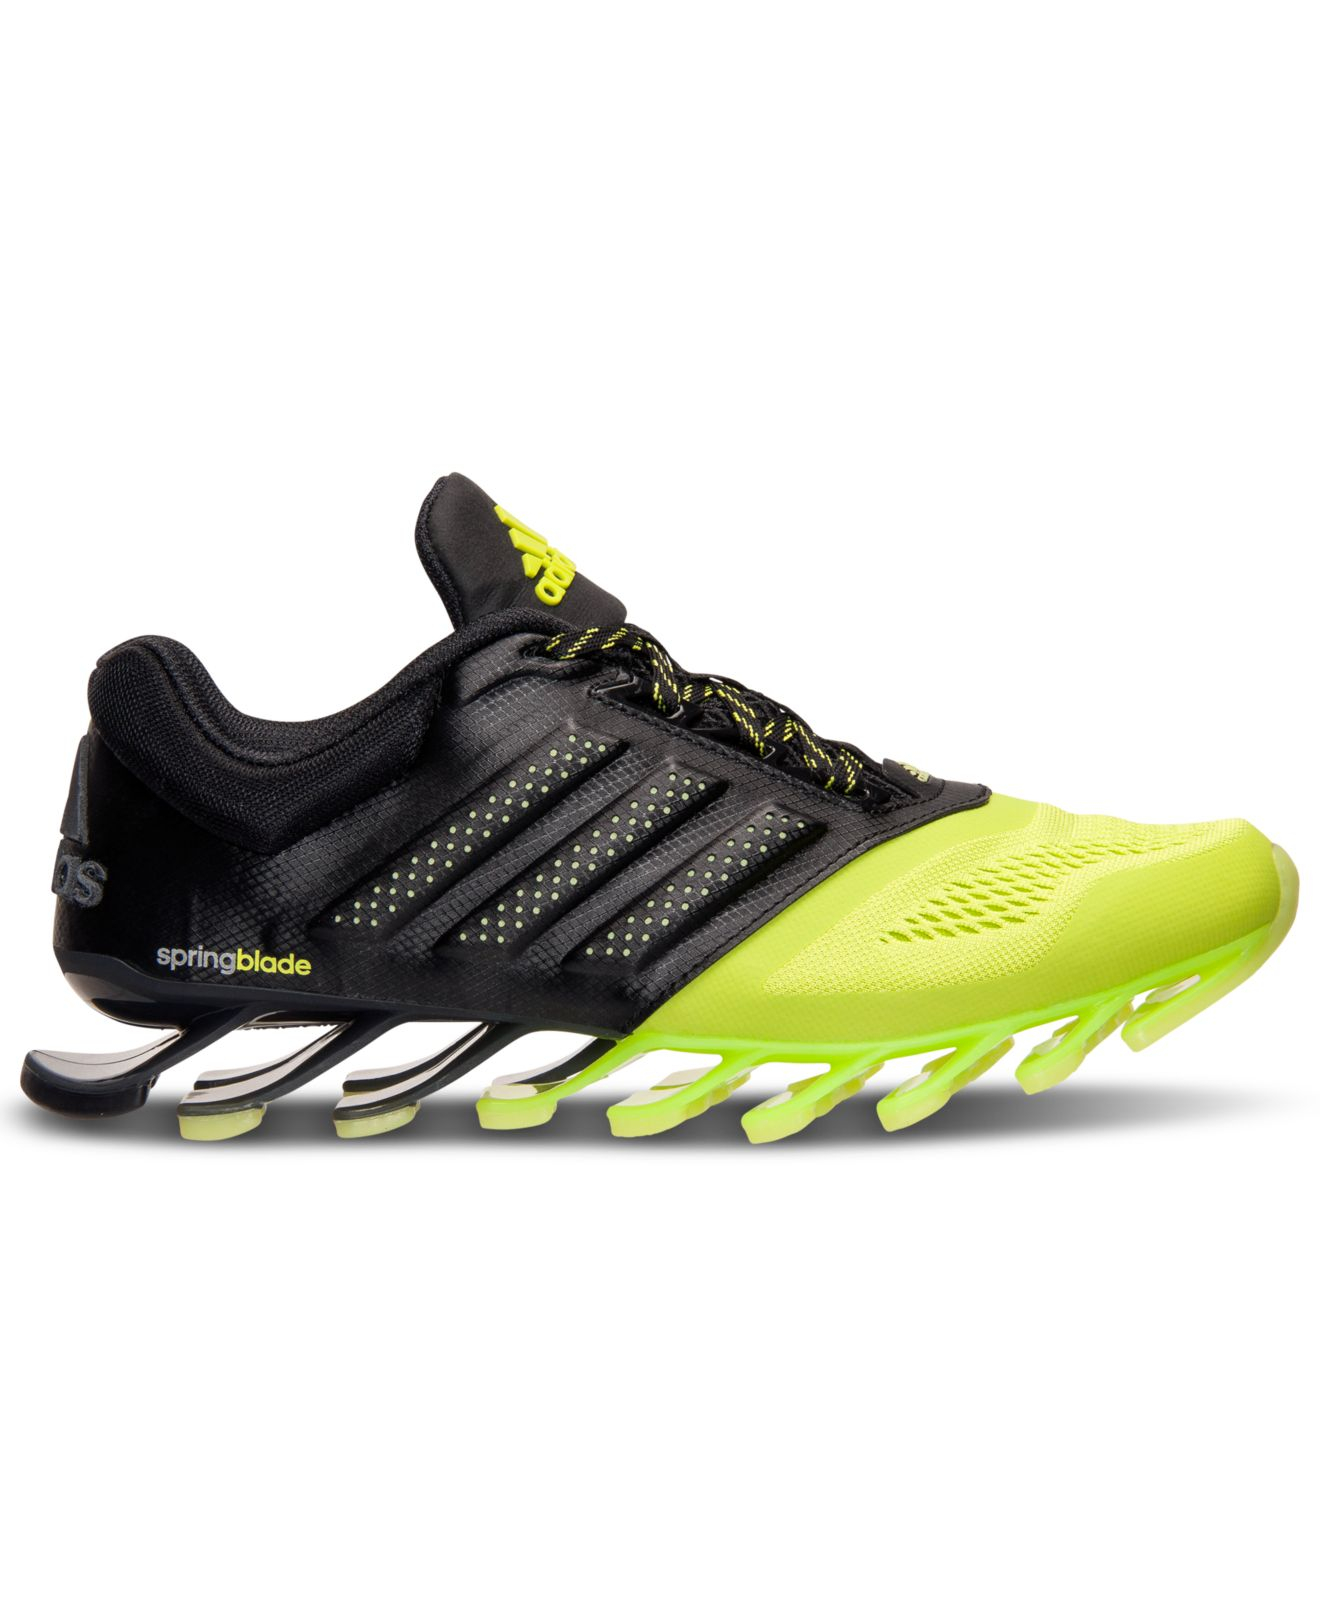 ... coupon code for lyst adidas mens springblade drive 2.0 running sneakers  from finish line in yellow 3a0c4bdec35ff